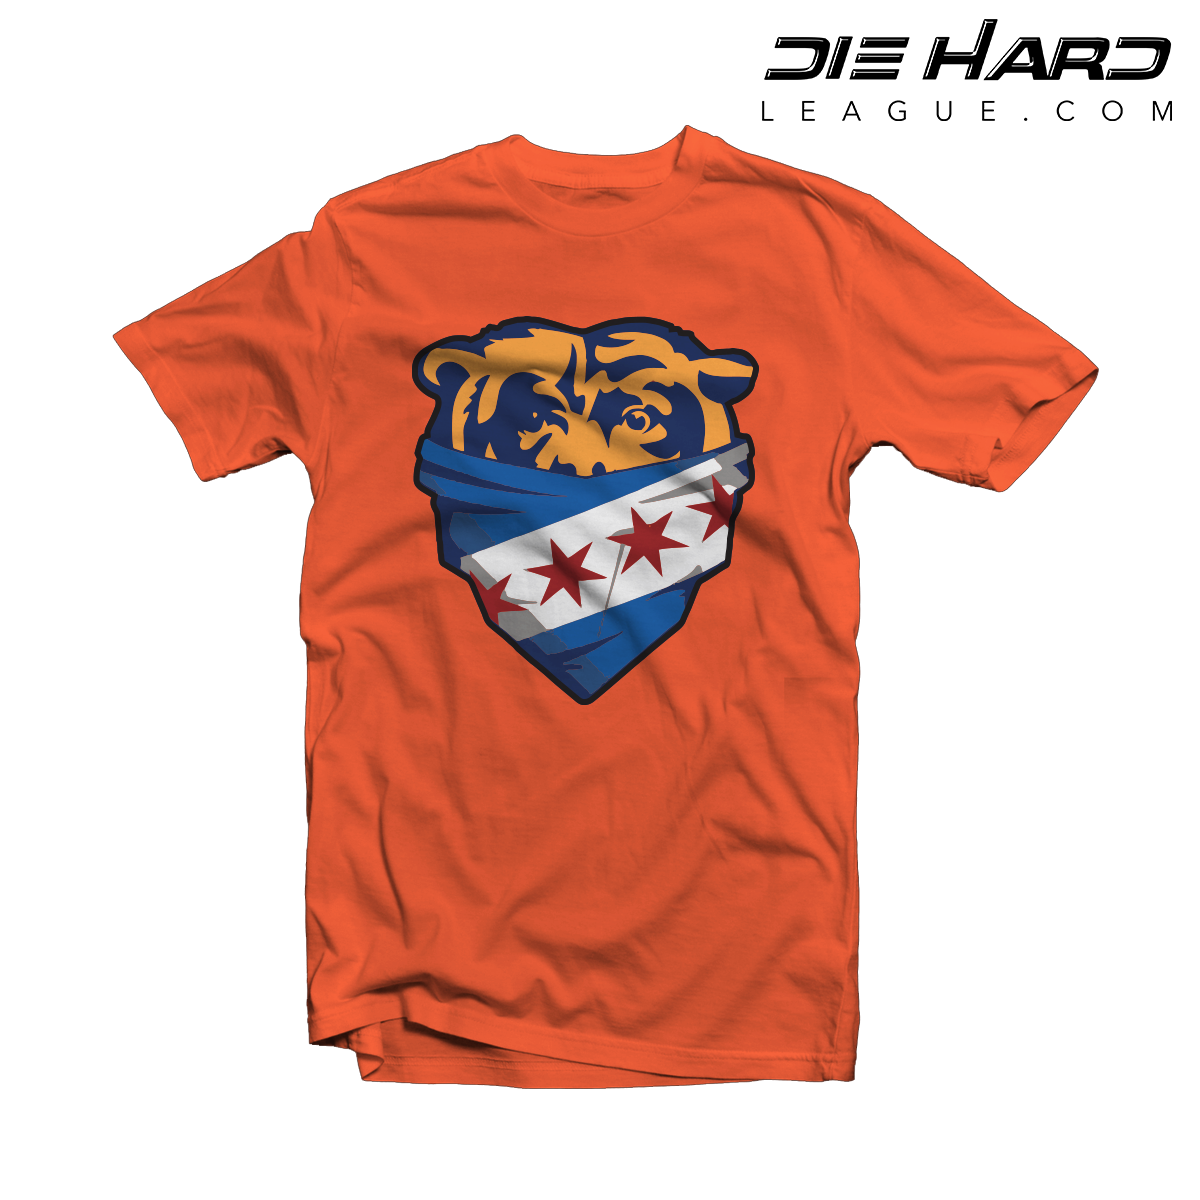 Chicago bears jersey bandana orange tee best selling for Selling t shirt designs